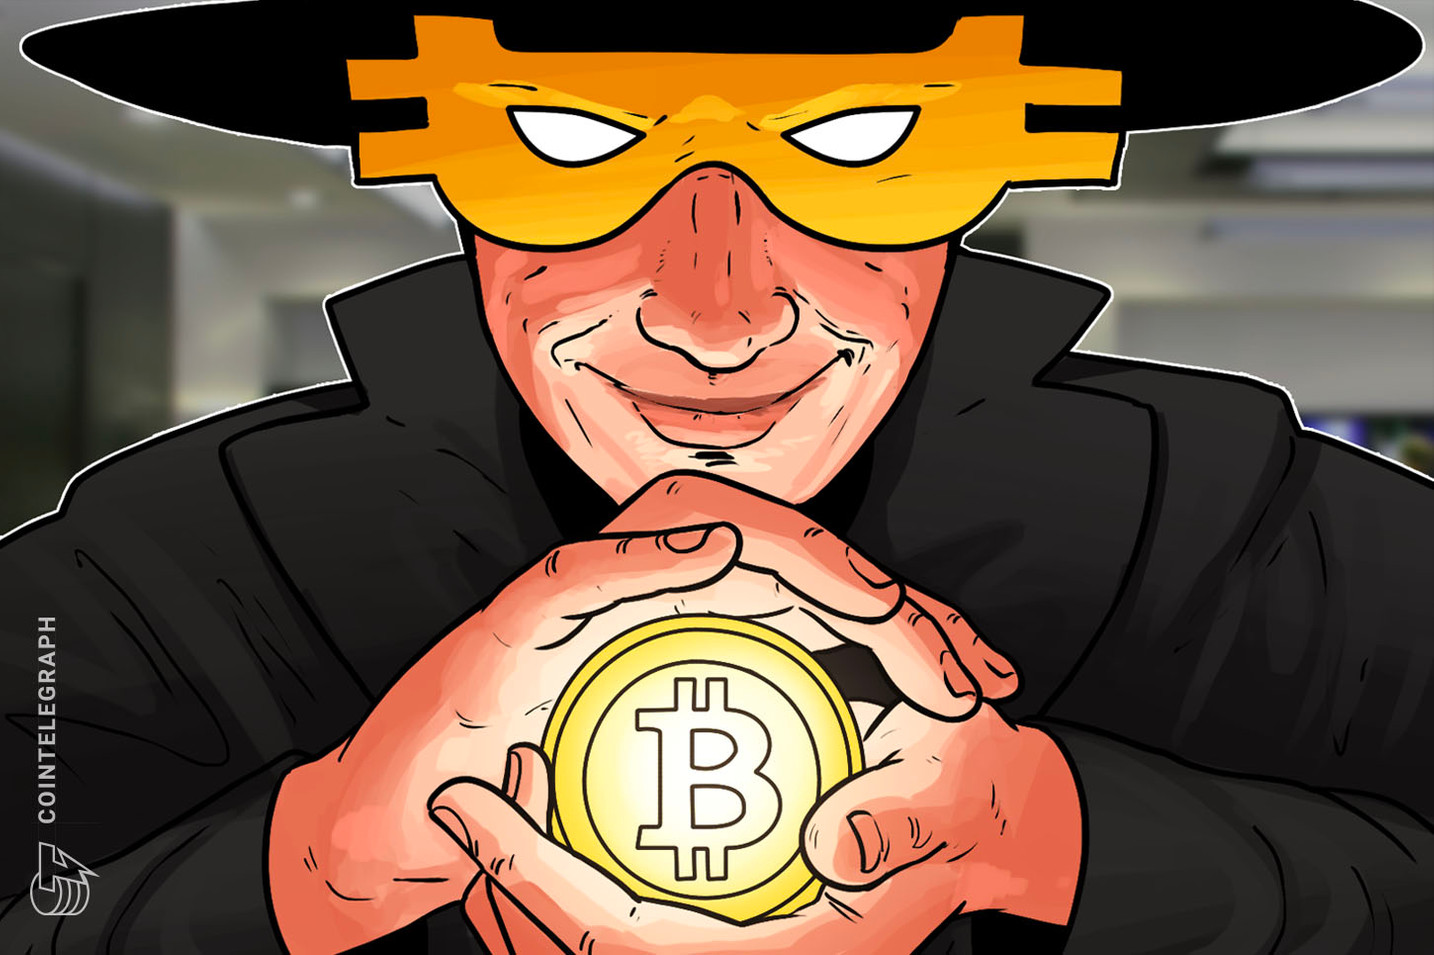 Copyright Registrations Do Not Recognize Craig Wright as Satoshi Nakamoto